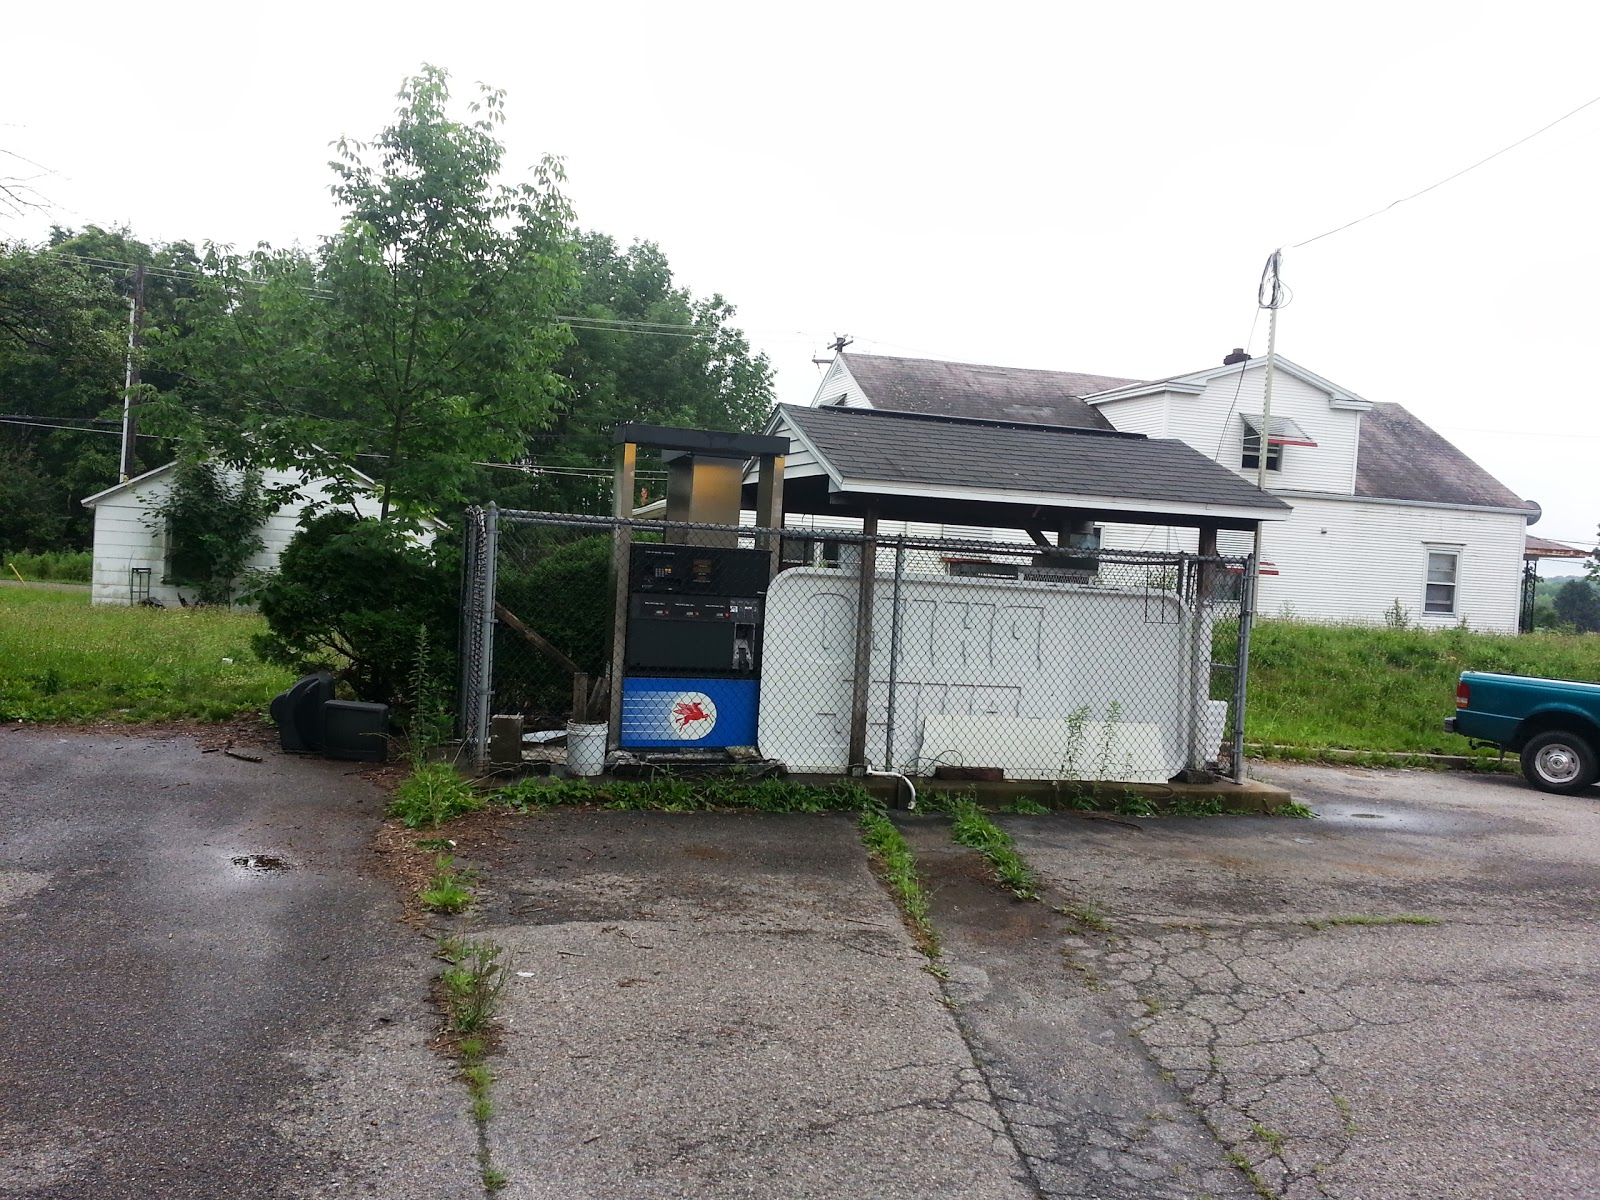 Gas Station With Property For Sale In Nj